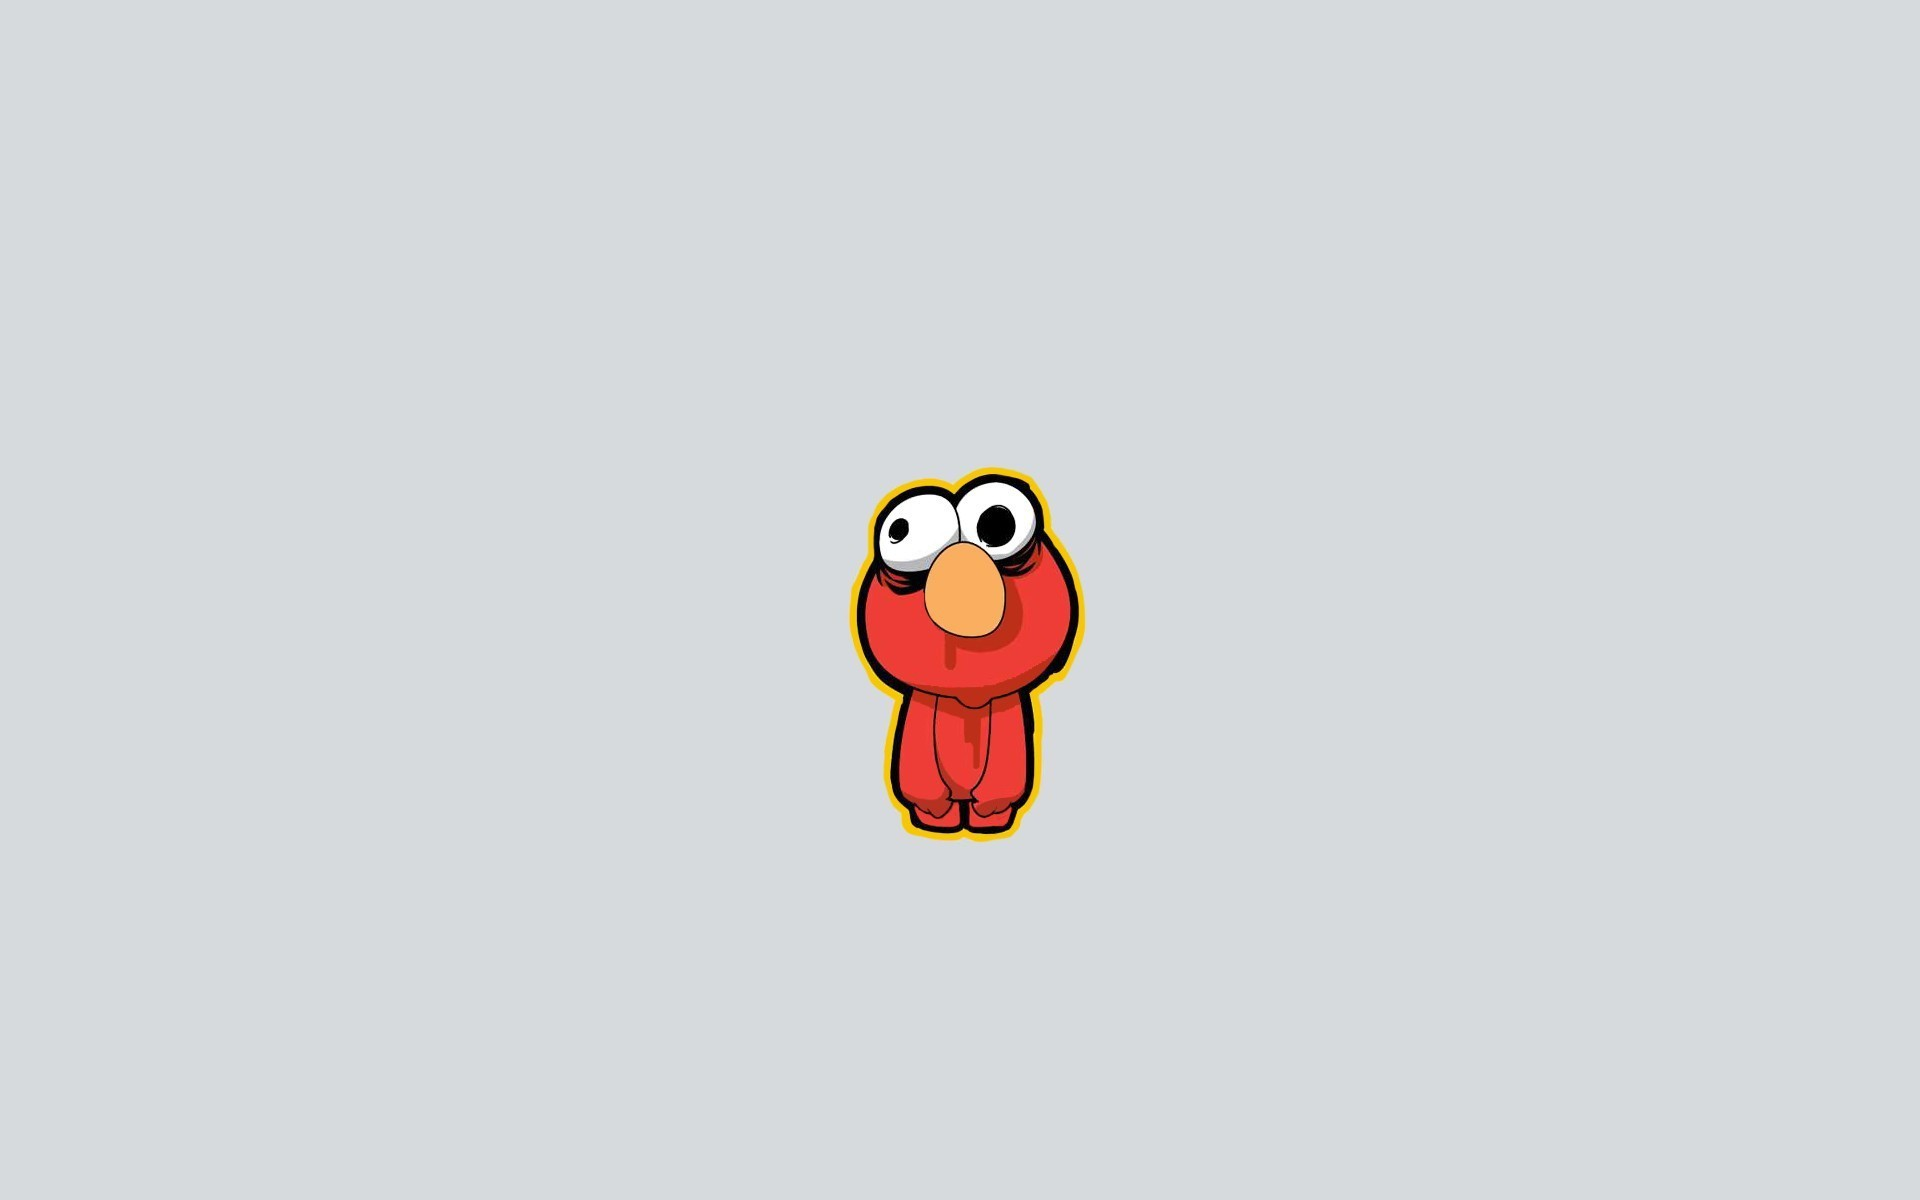 Res: 1920x1200, Elmo from Sesame Street, a gray background